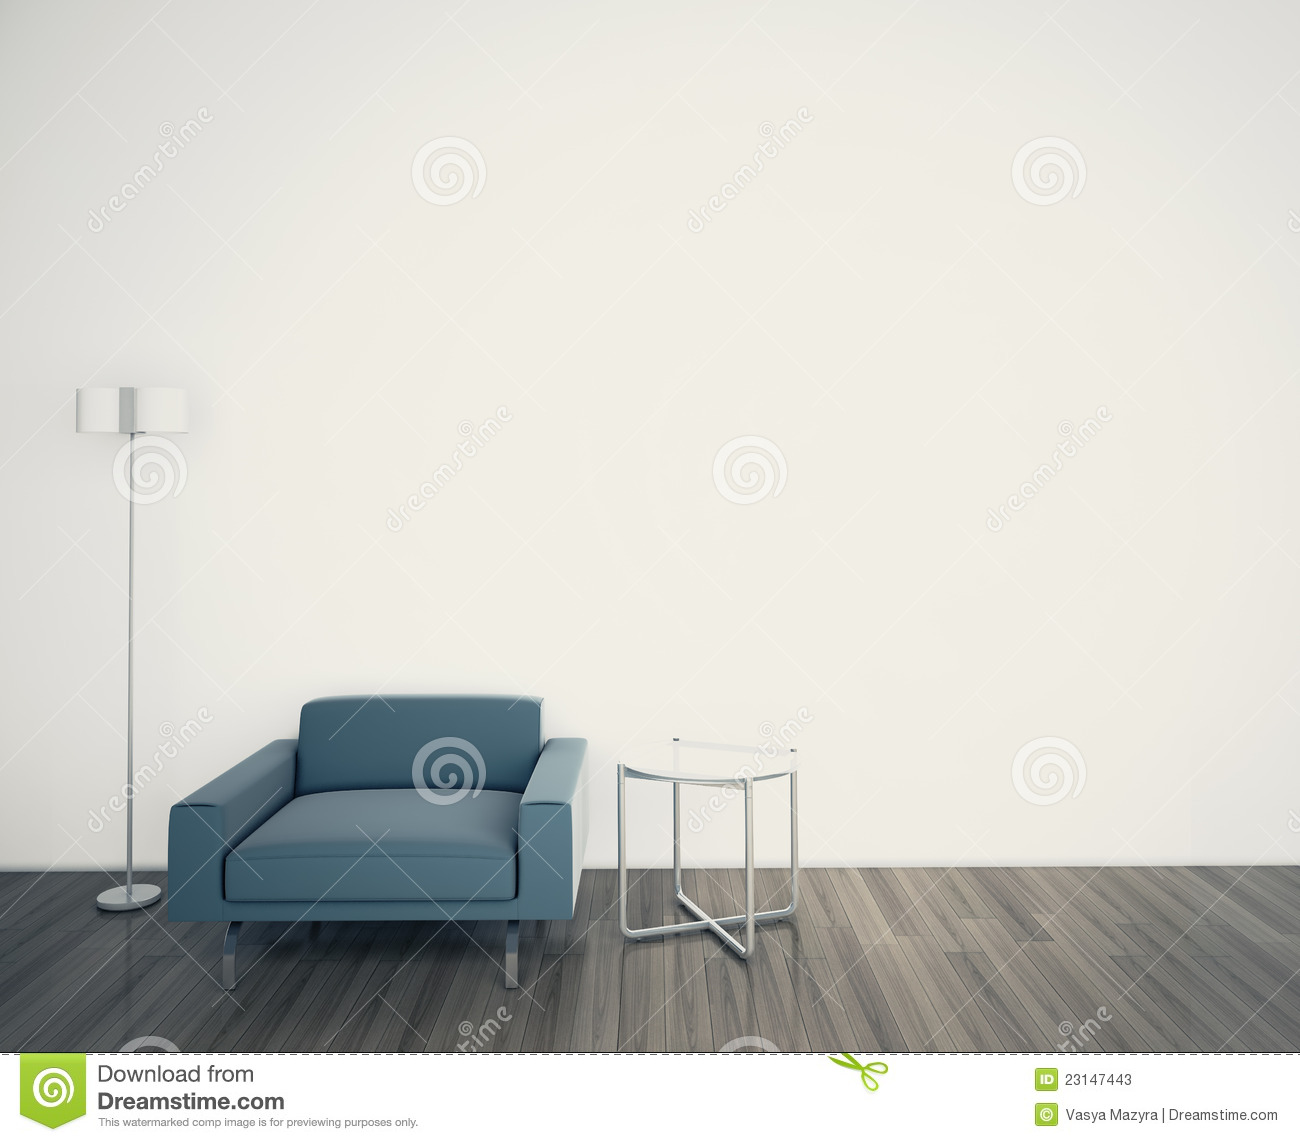 Minimal Modern Interior Armchair FACE A BLANK WALL Stock  : minimal modern interior armchair face blank wall 23147443 from www.dreamstime.com size 1300 x 1142 jpeg 168kB